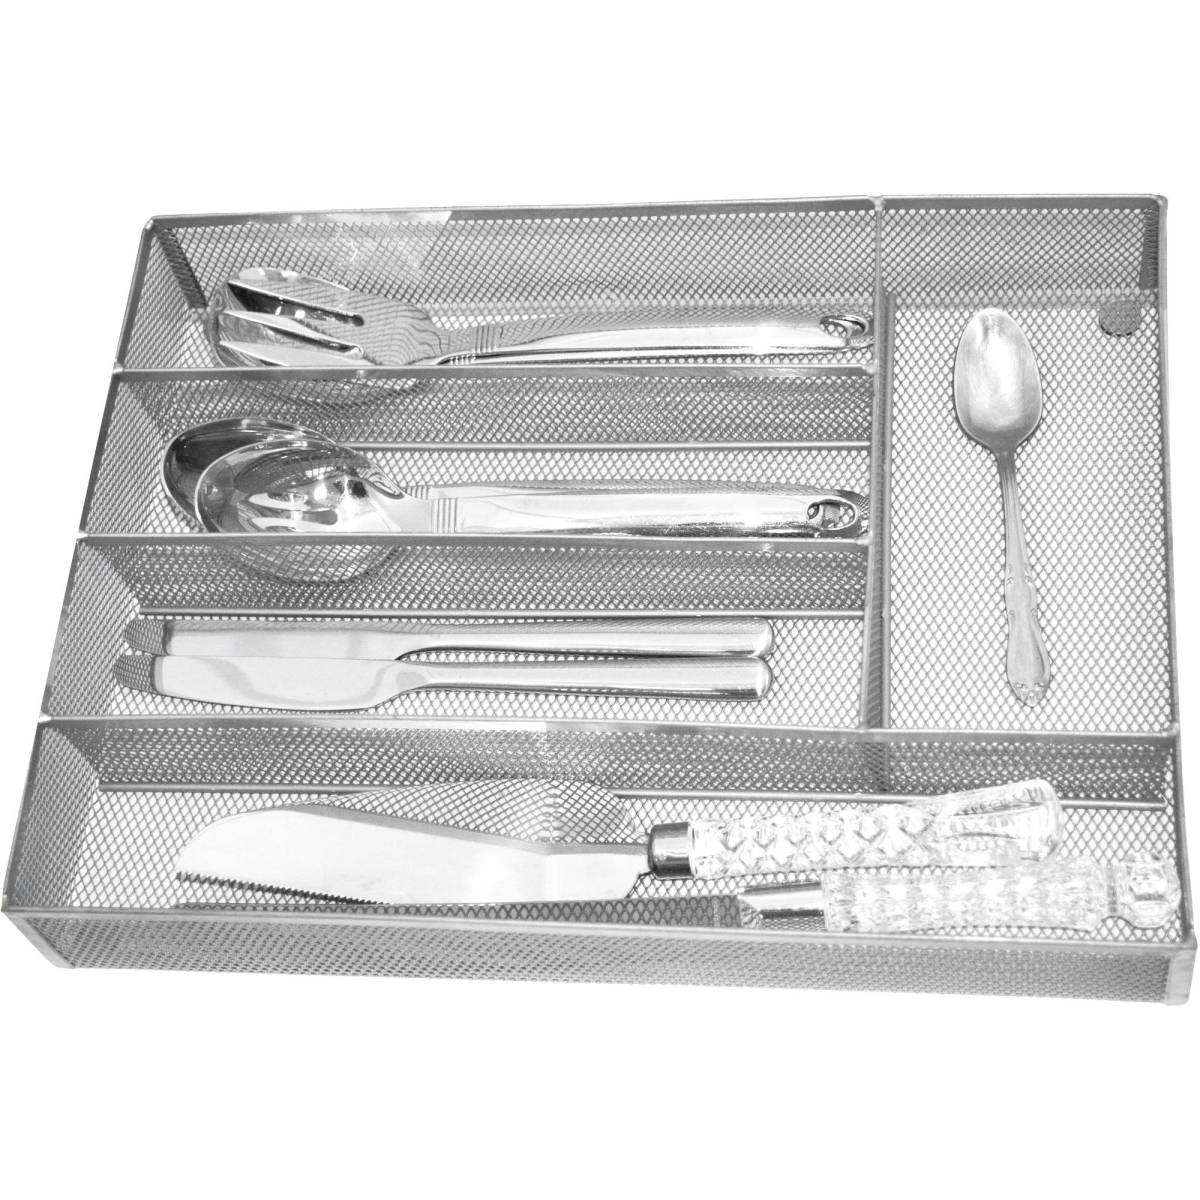 Kitchen drawer organizers